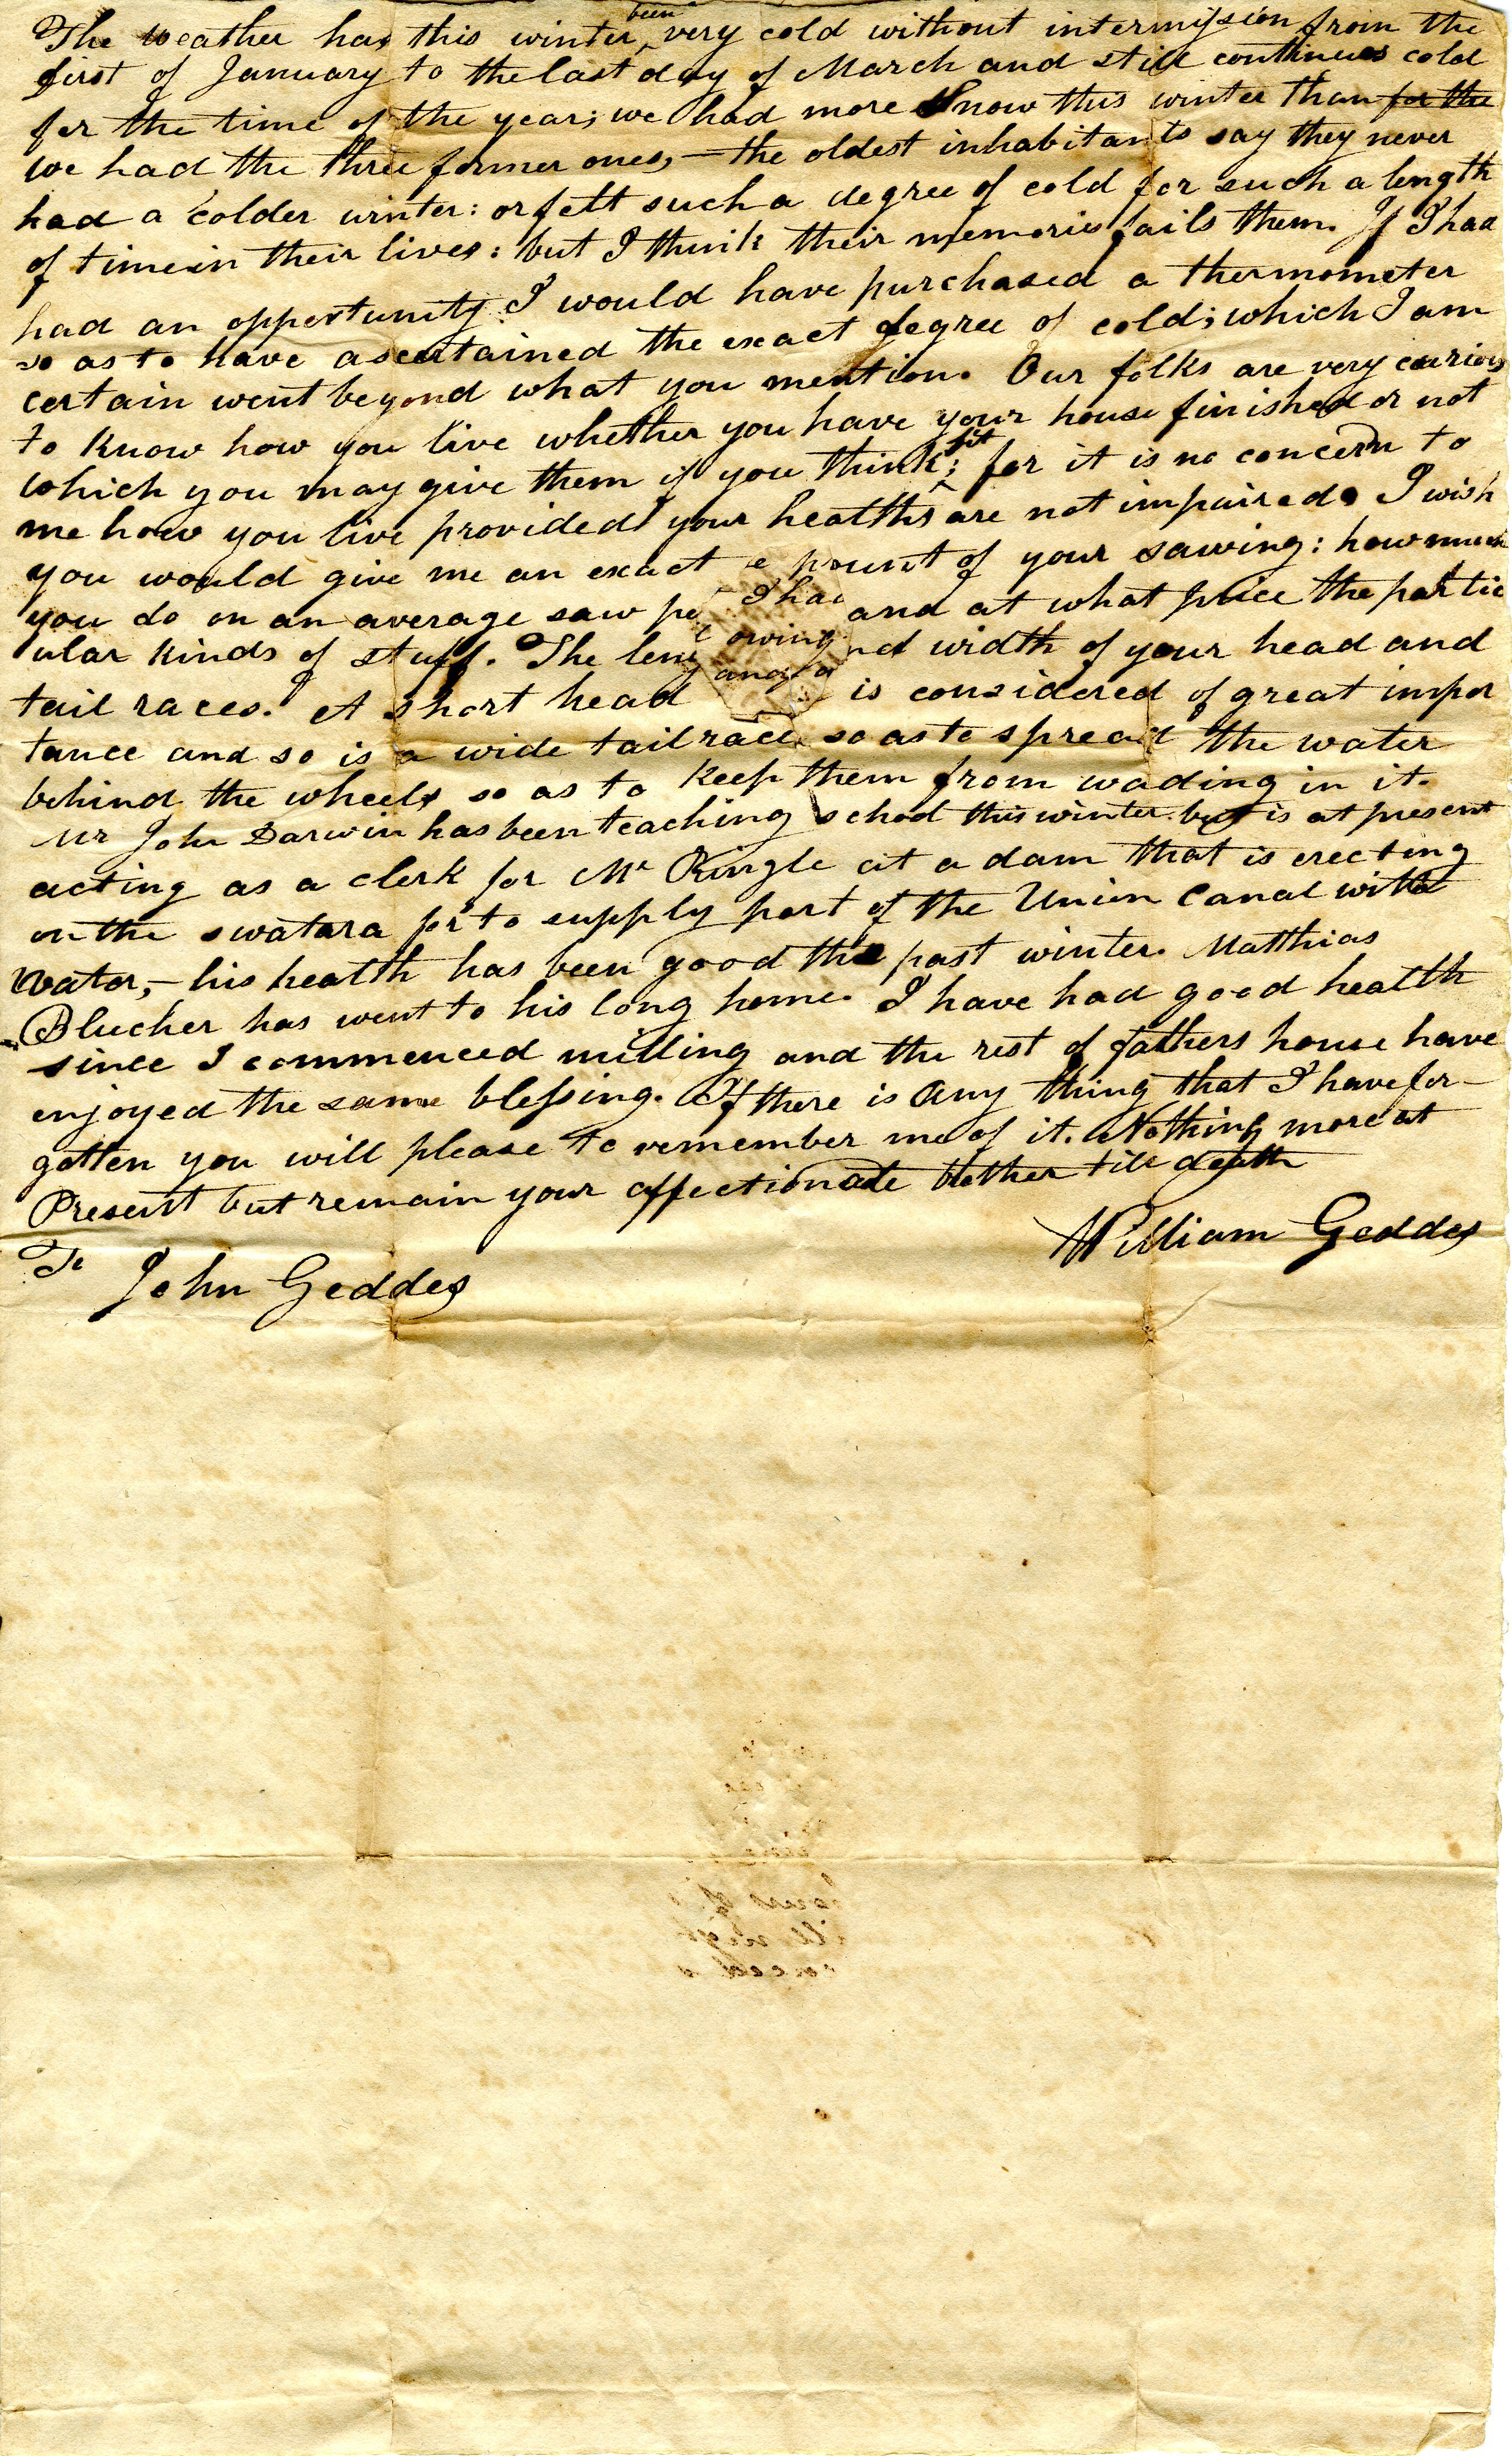 Letter From William Geddes to John Geddes, April 11, 1829  image